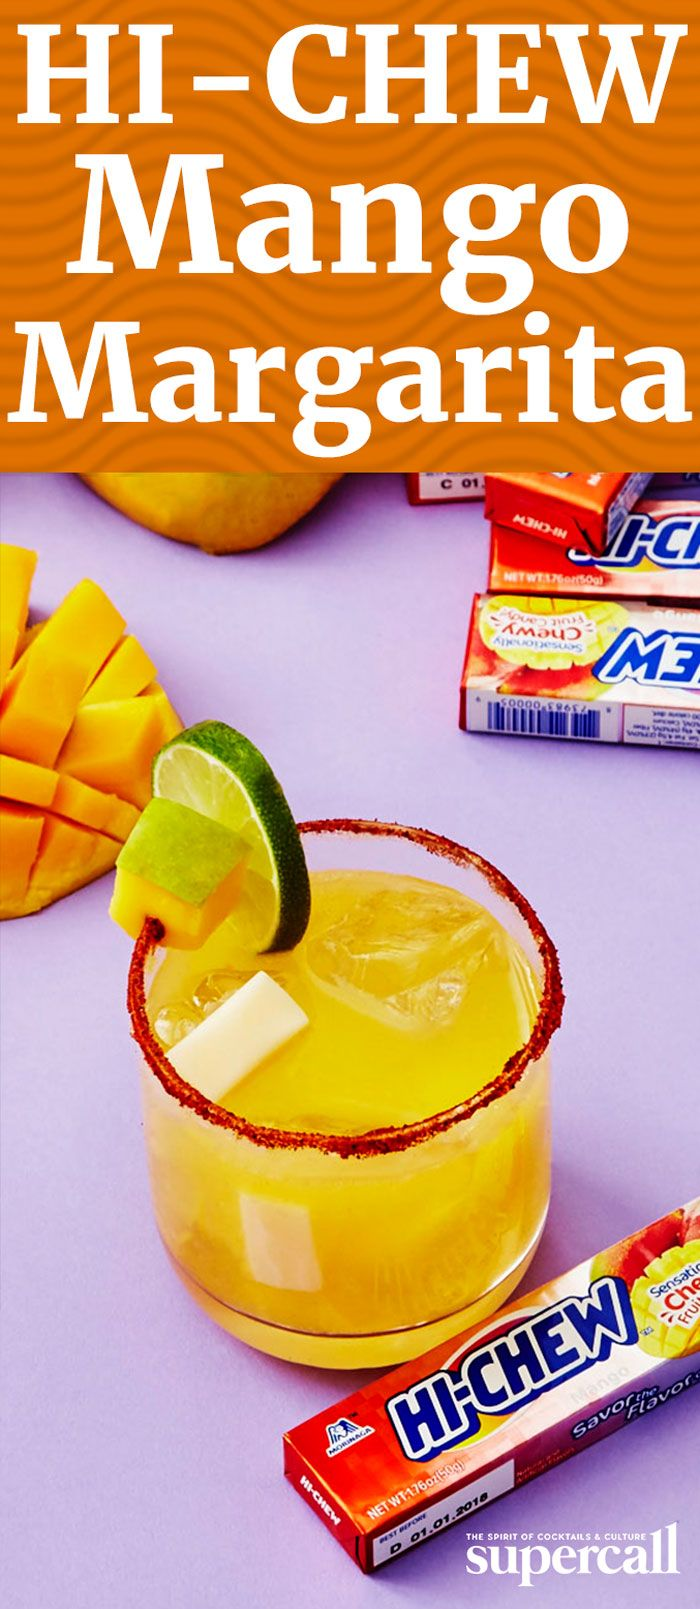 The Mango Chile-rita is a fun, slightly spicy twist on the classic Margarita. Made with Mango HI-CHEW-infused reposado tequila—excellent aged tequila that really heightens the mango flavor—this cocktail provides all the refreshing flavors of summer and a touch of spice.